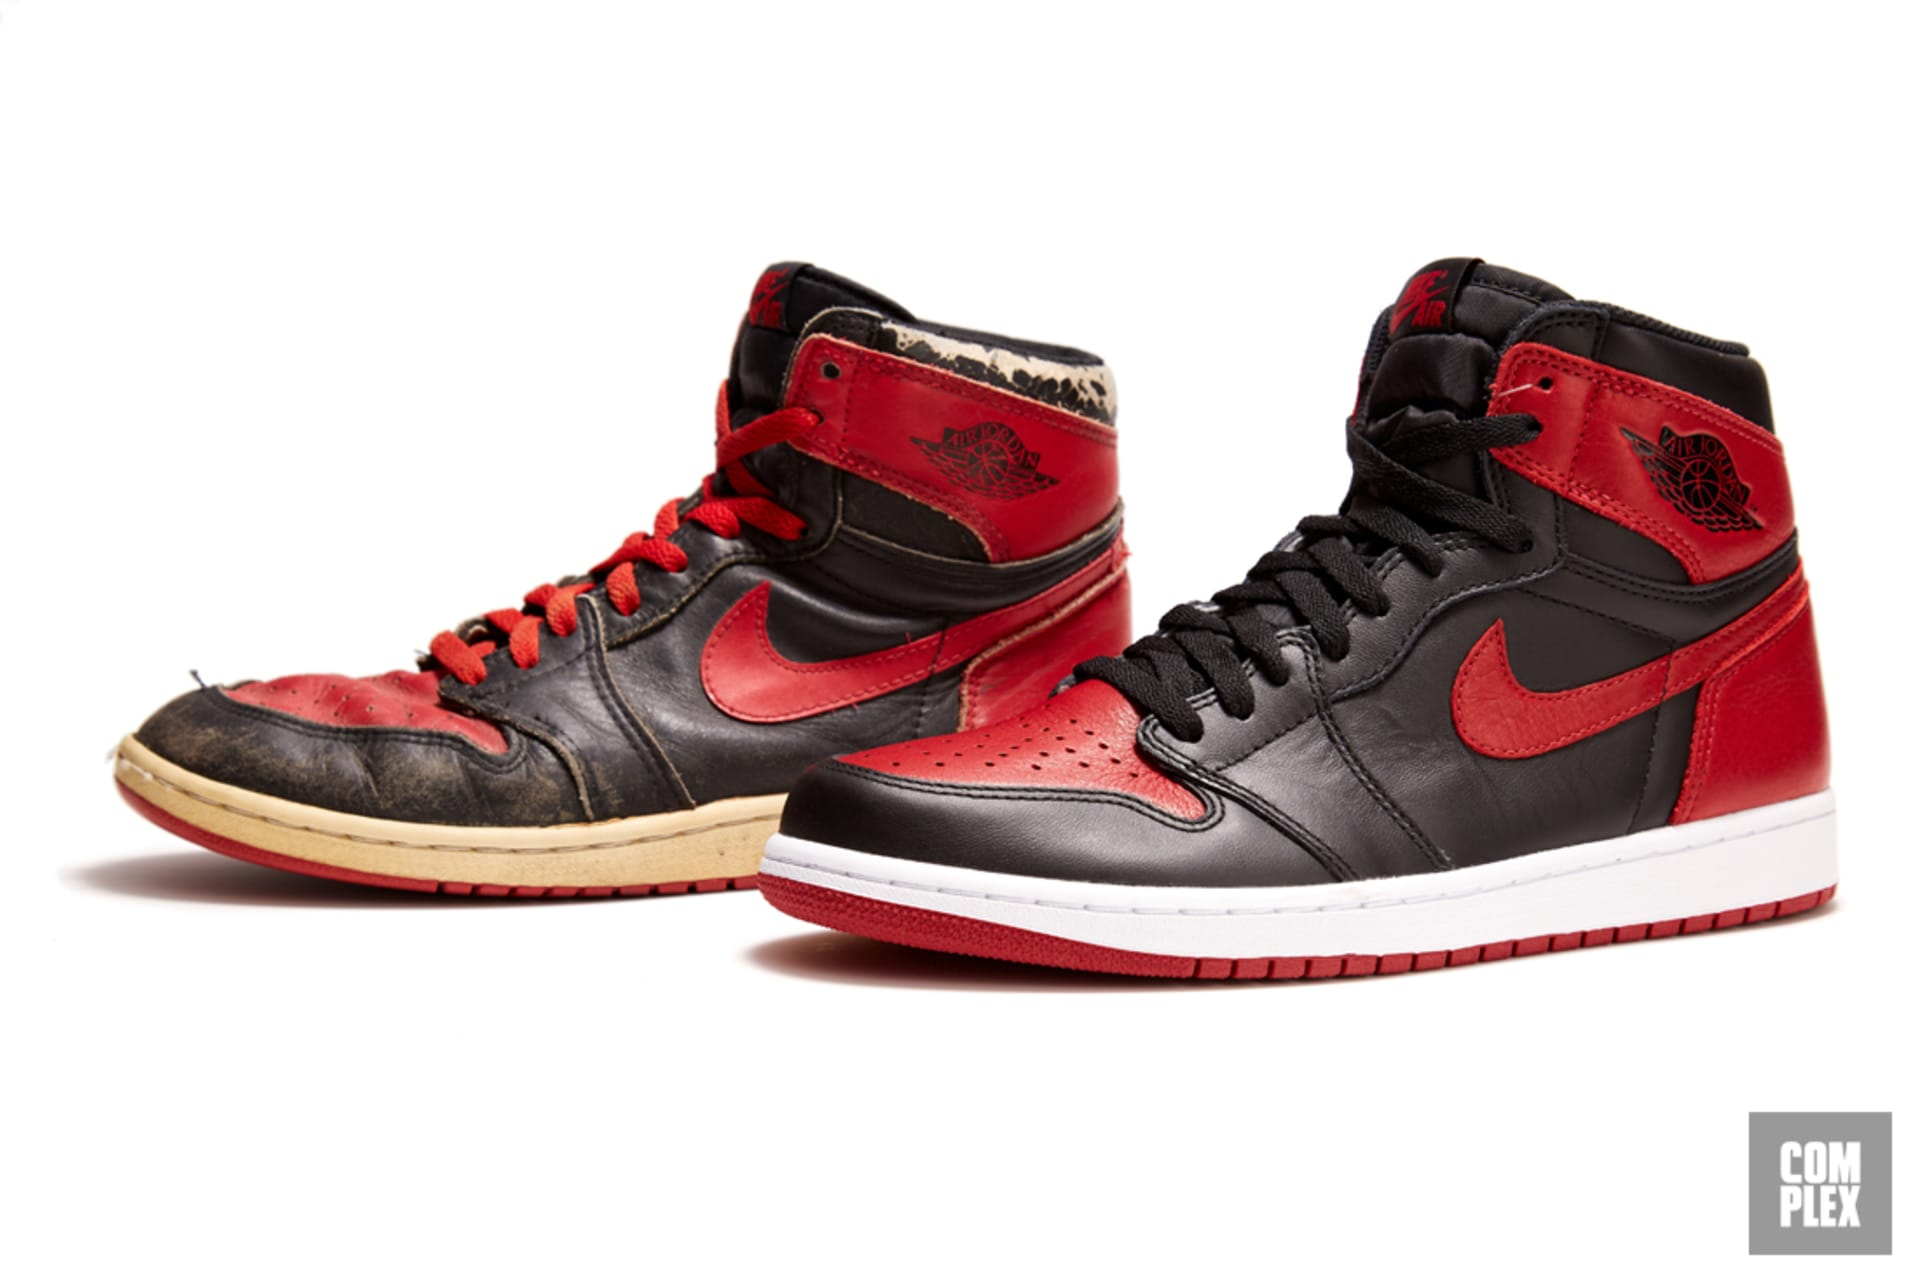 50d9d5f3dc7f The Evolution of the Black and Red Air Jordan 1